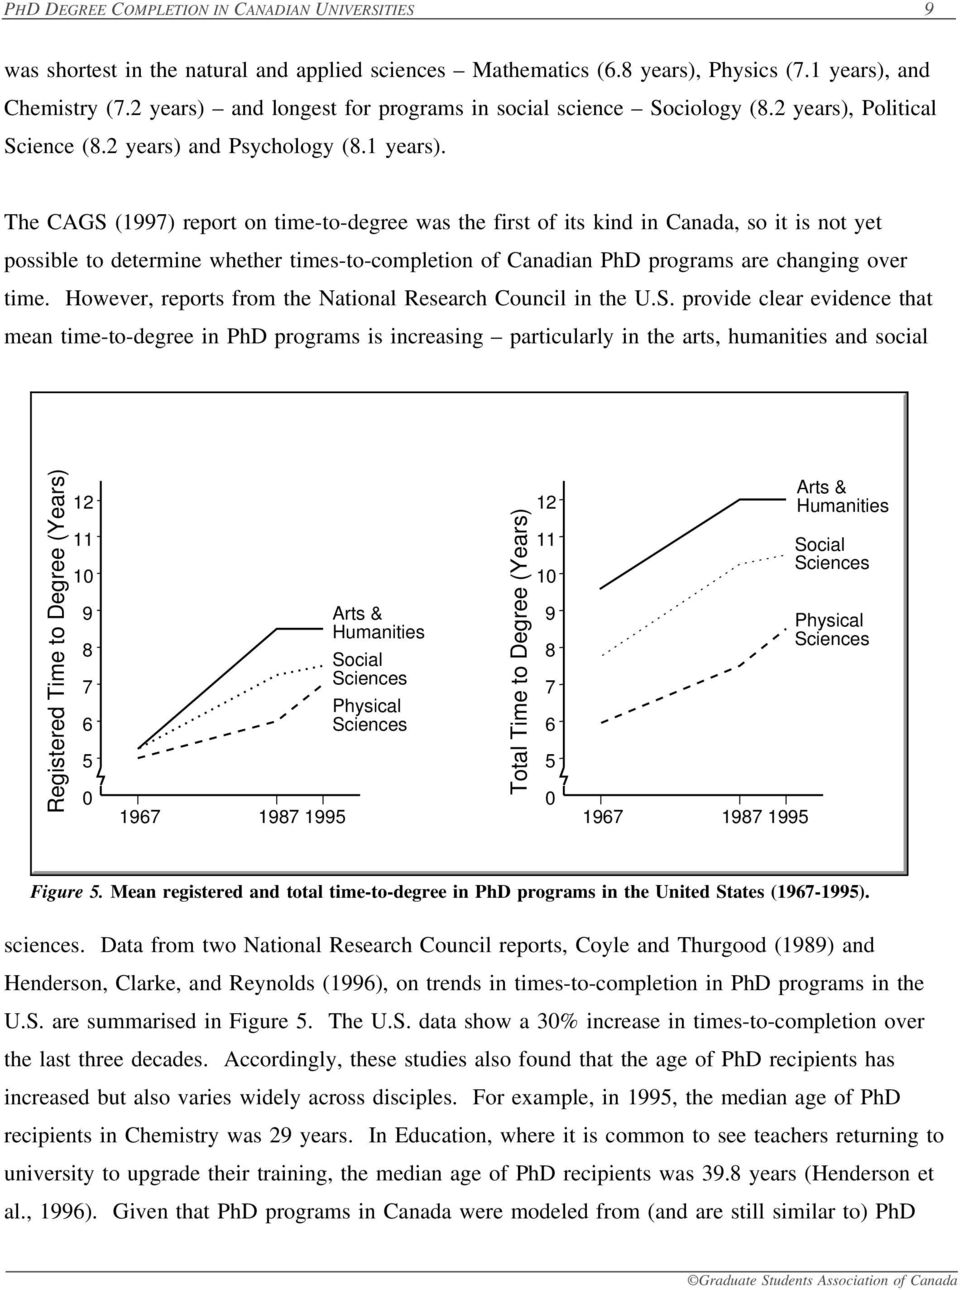 The CAGS (1997) report on time-to-degree was the first of its kind in Canada, so it is not yet possible to determine whether times-to-completion of Canadian PhD programs are changing over time.